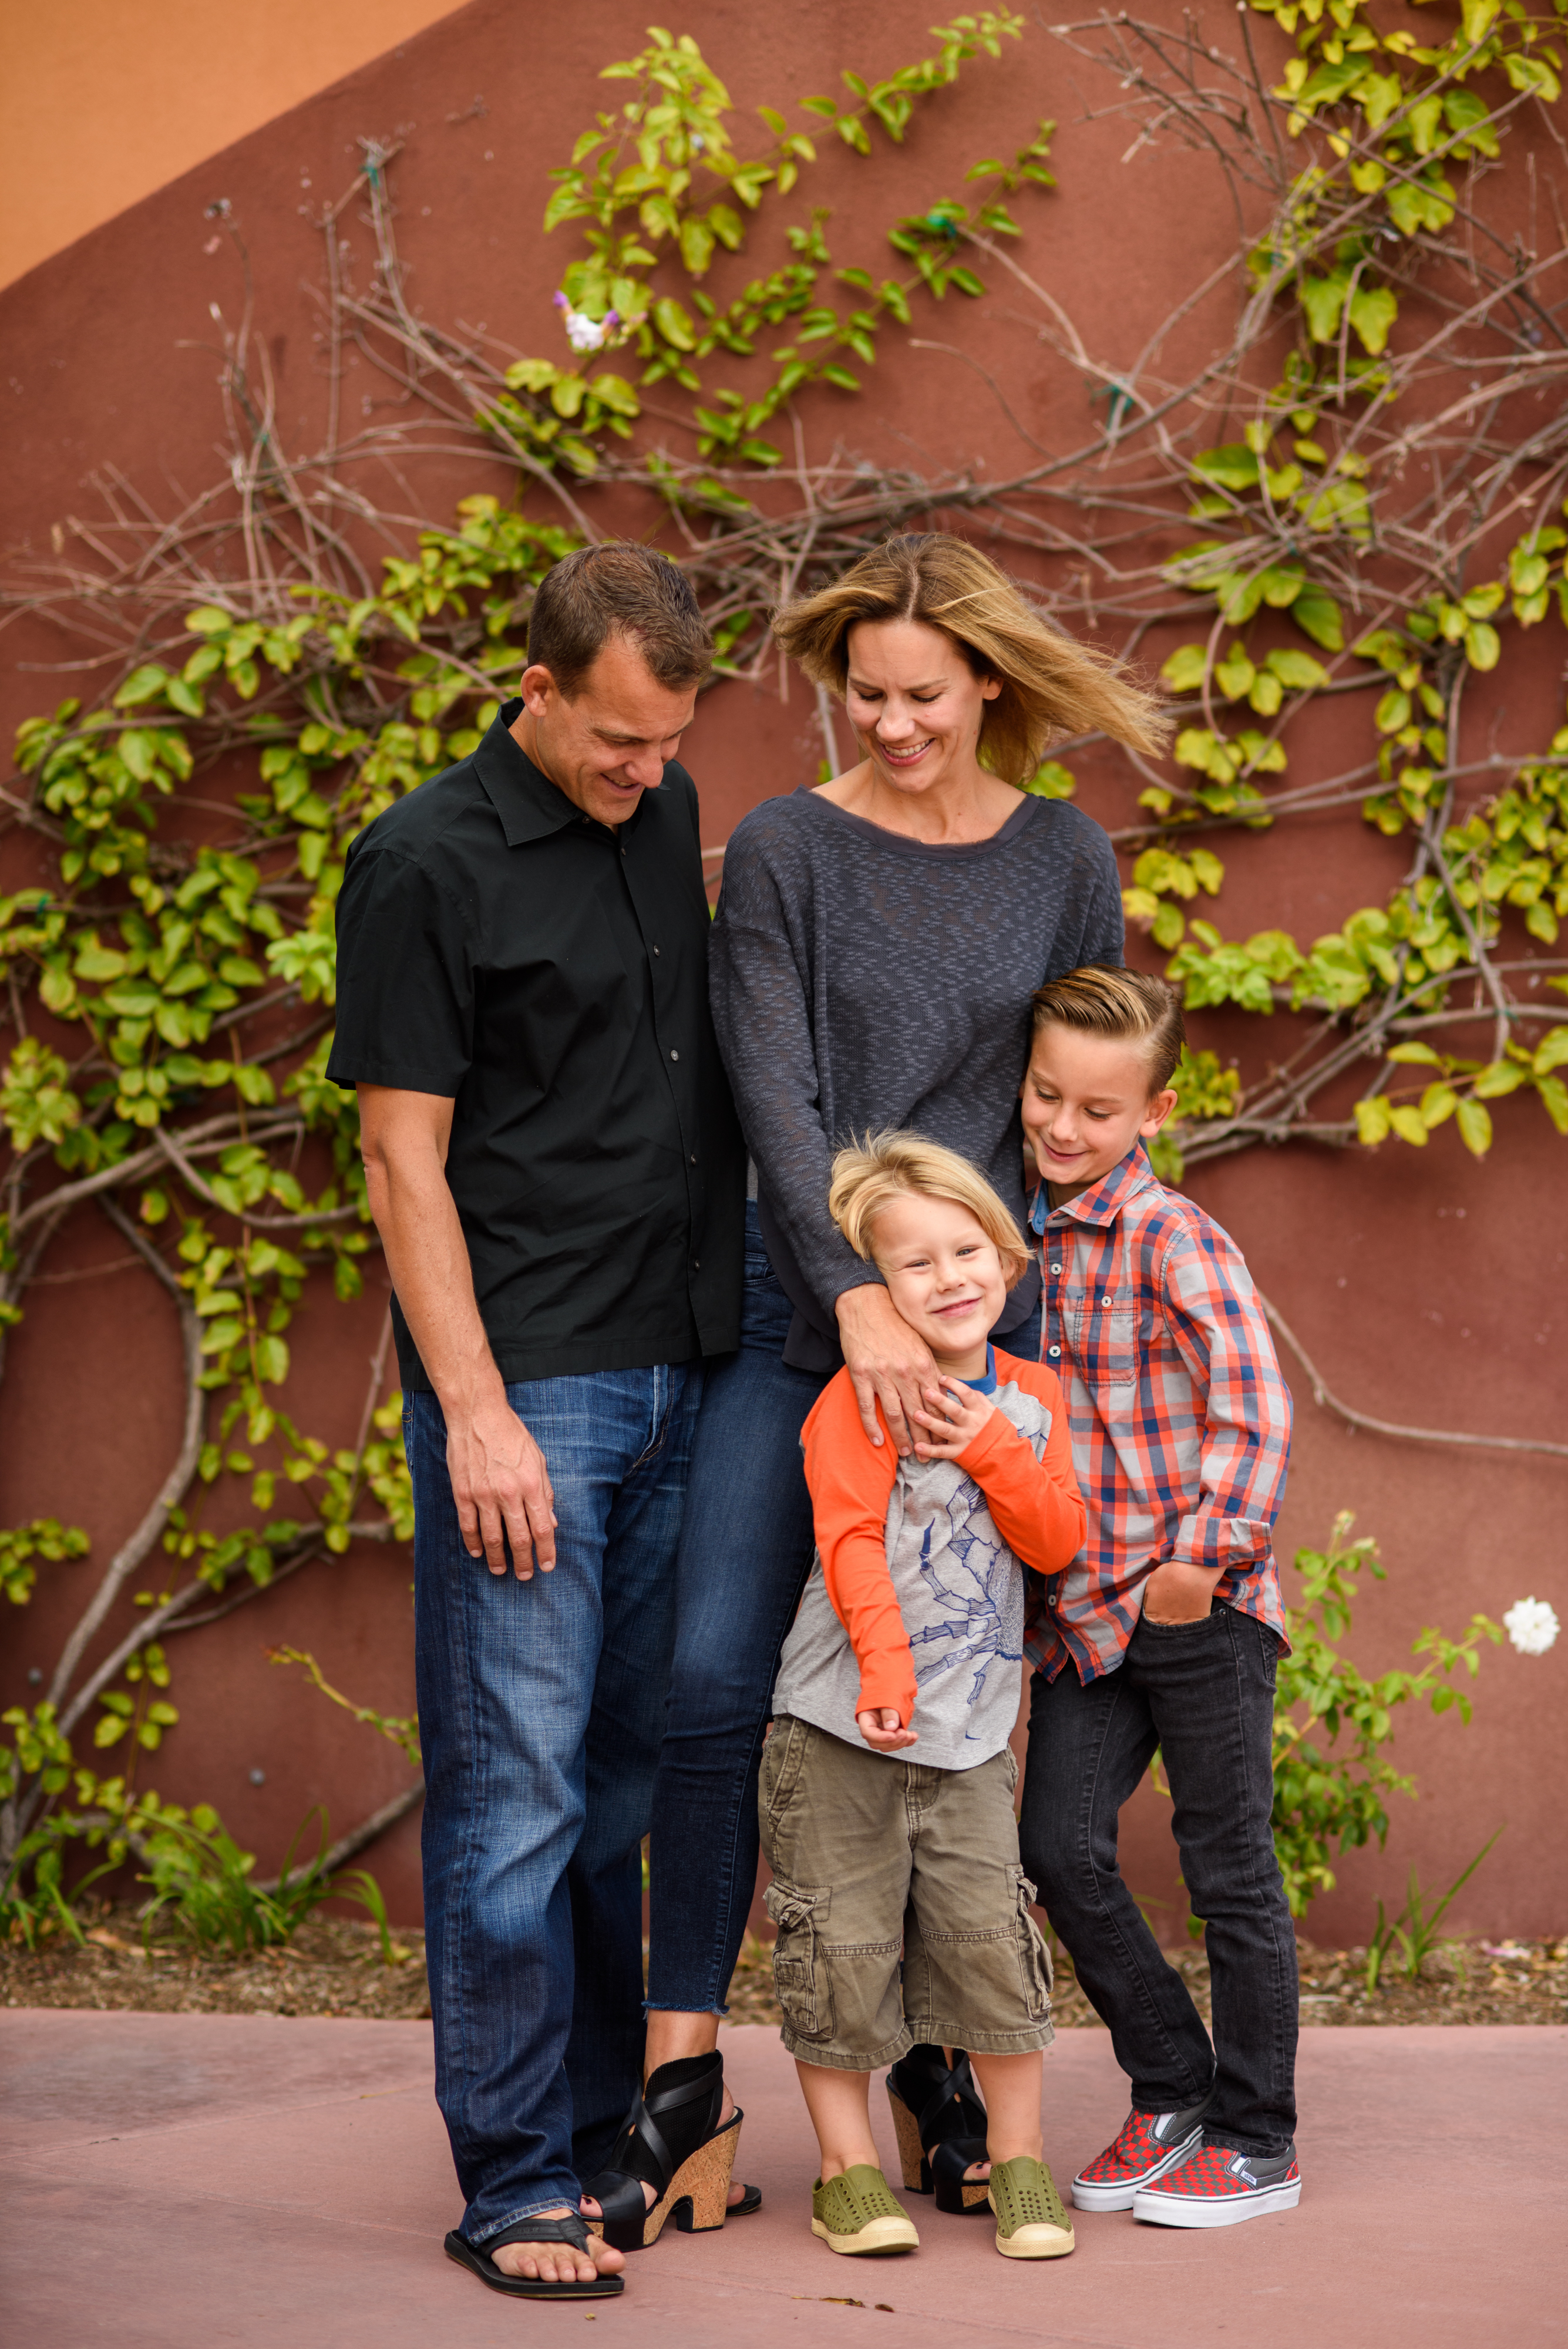 San-diego-family-photography-pung-vance-family-10